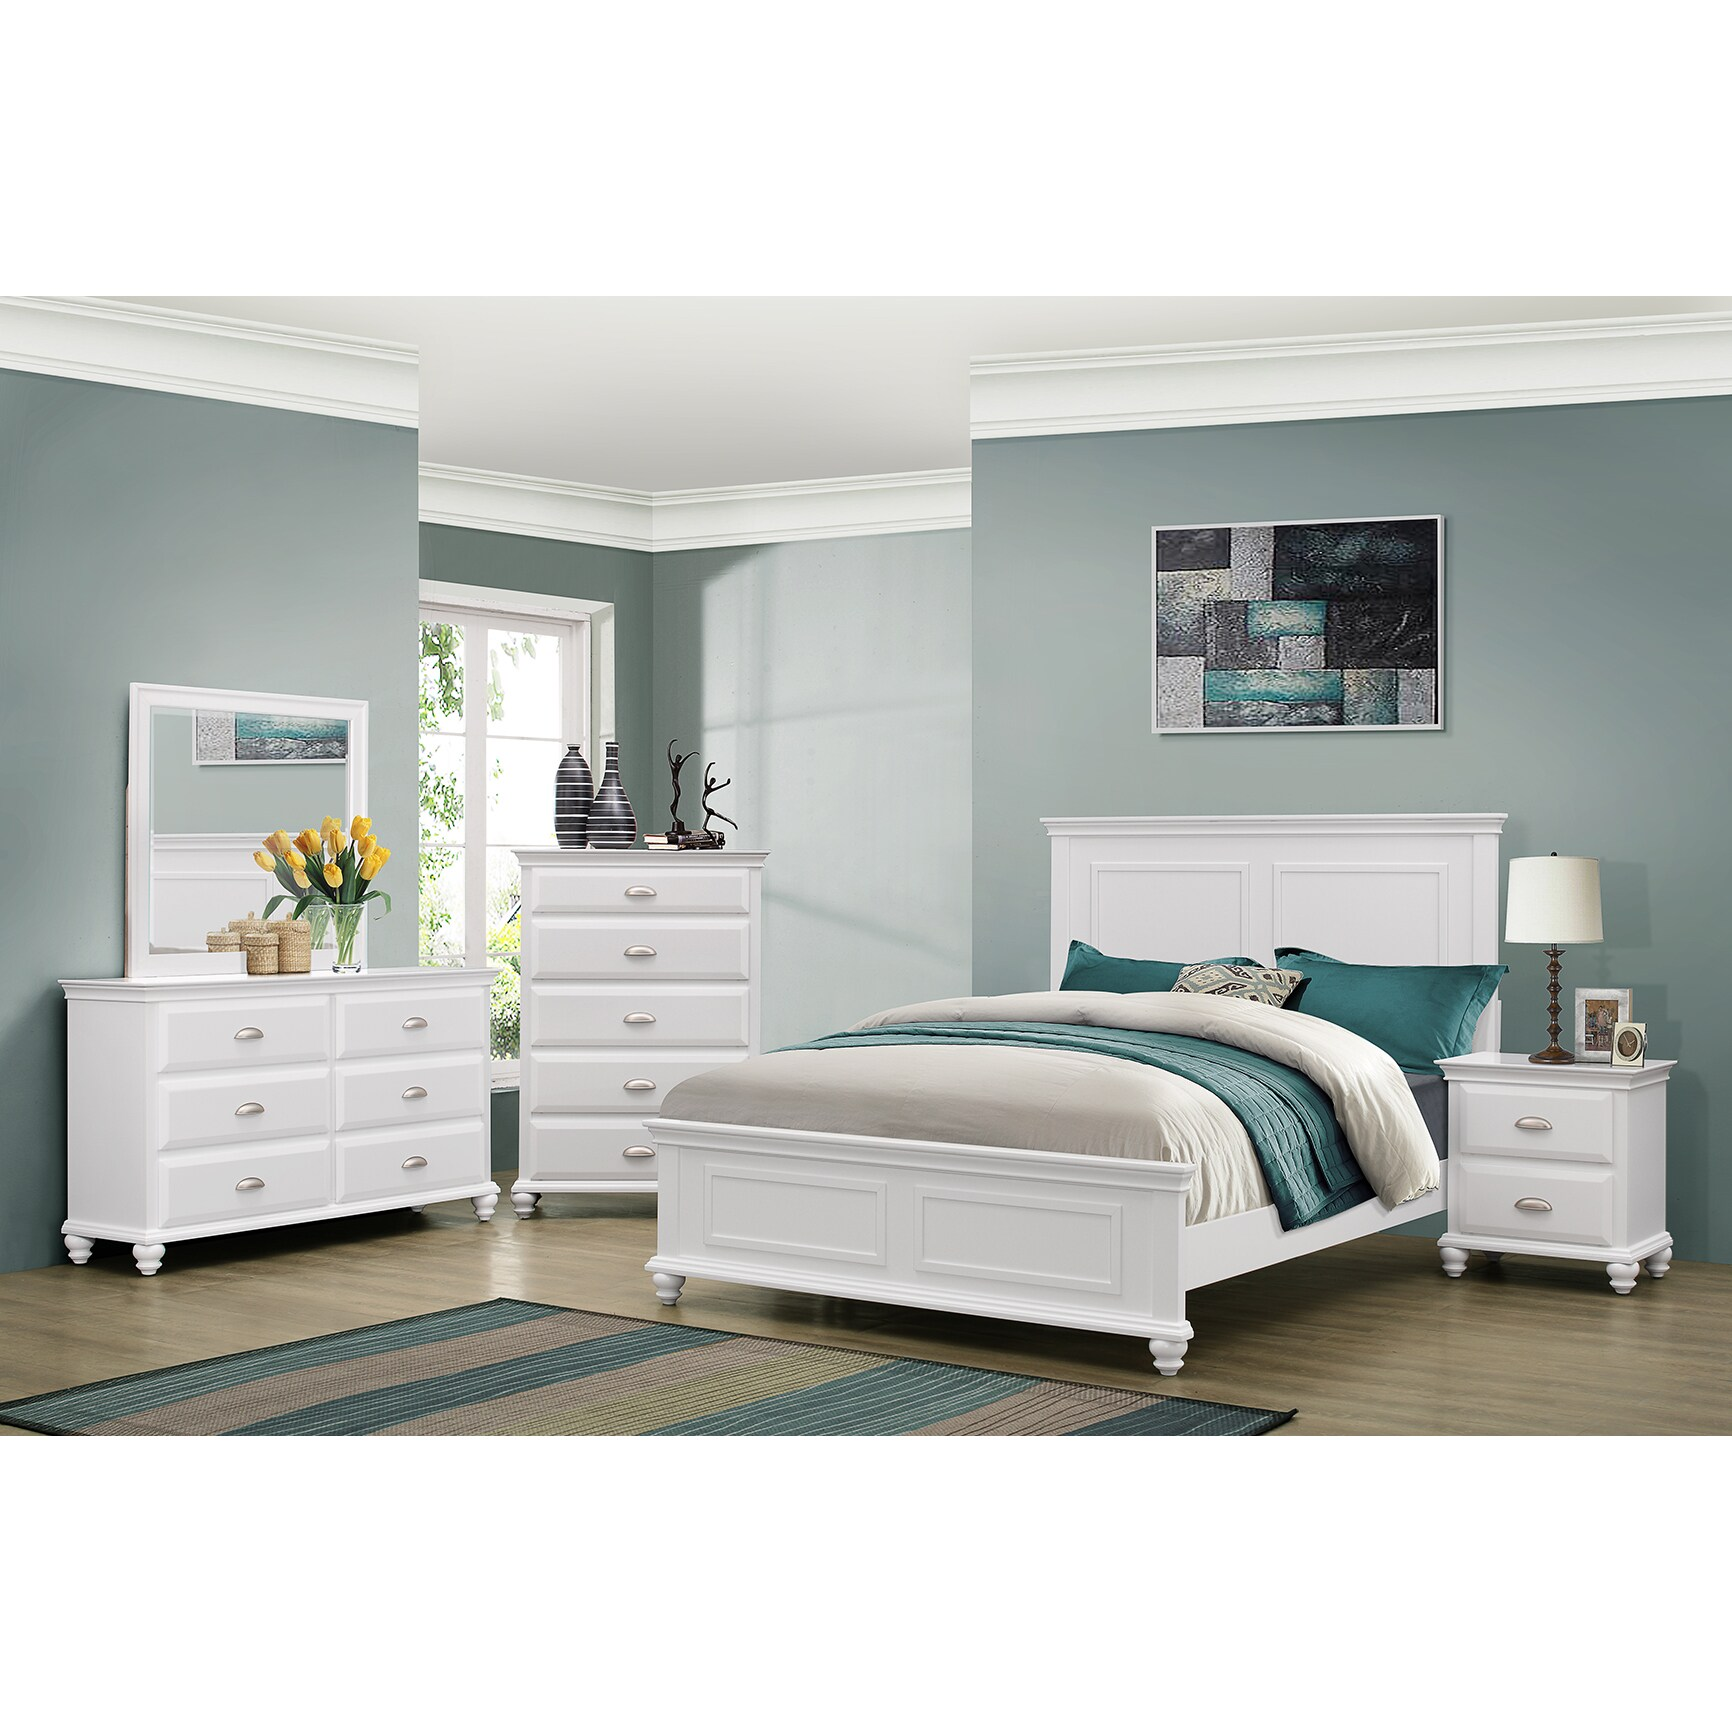 Shop Simmons Casegoods Cape Cod Collection Queen King Bed